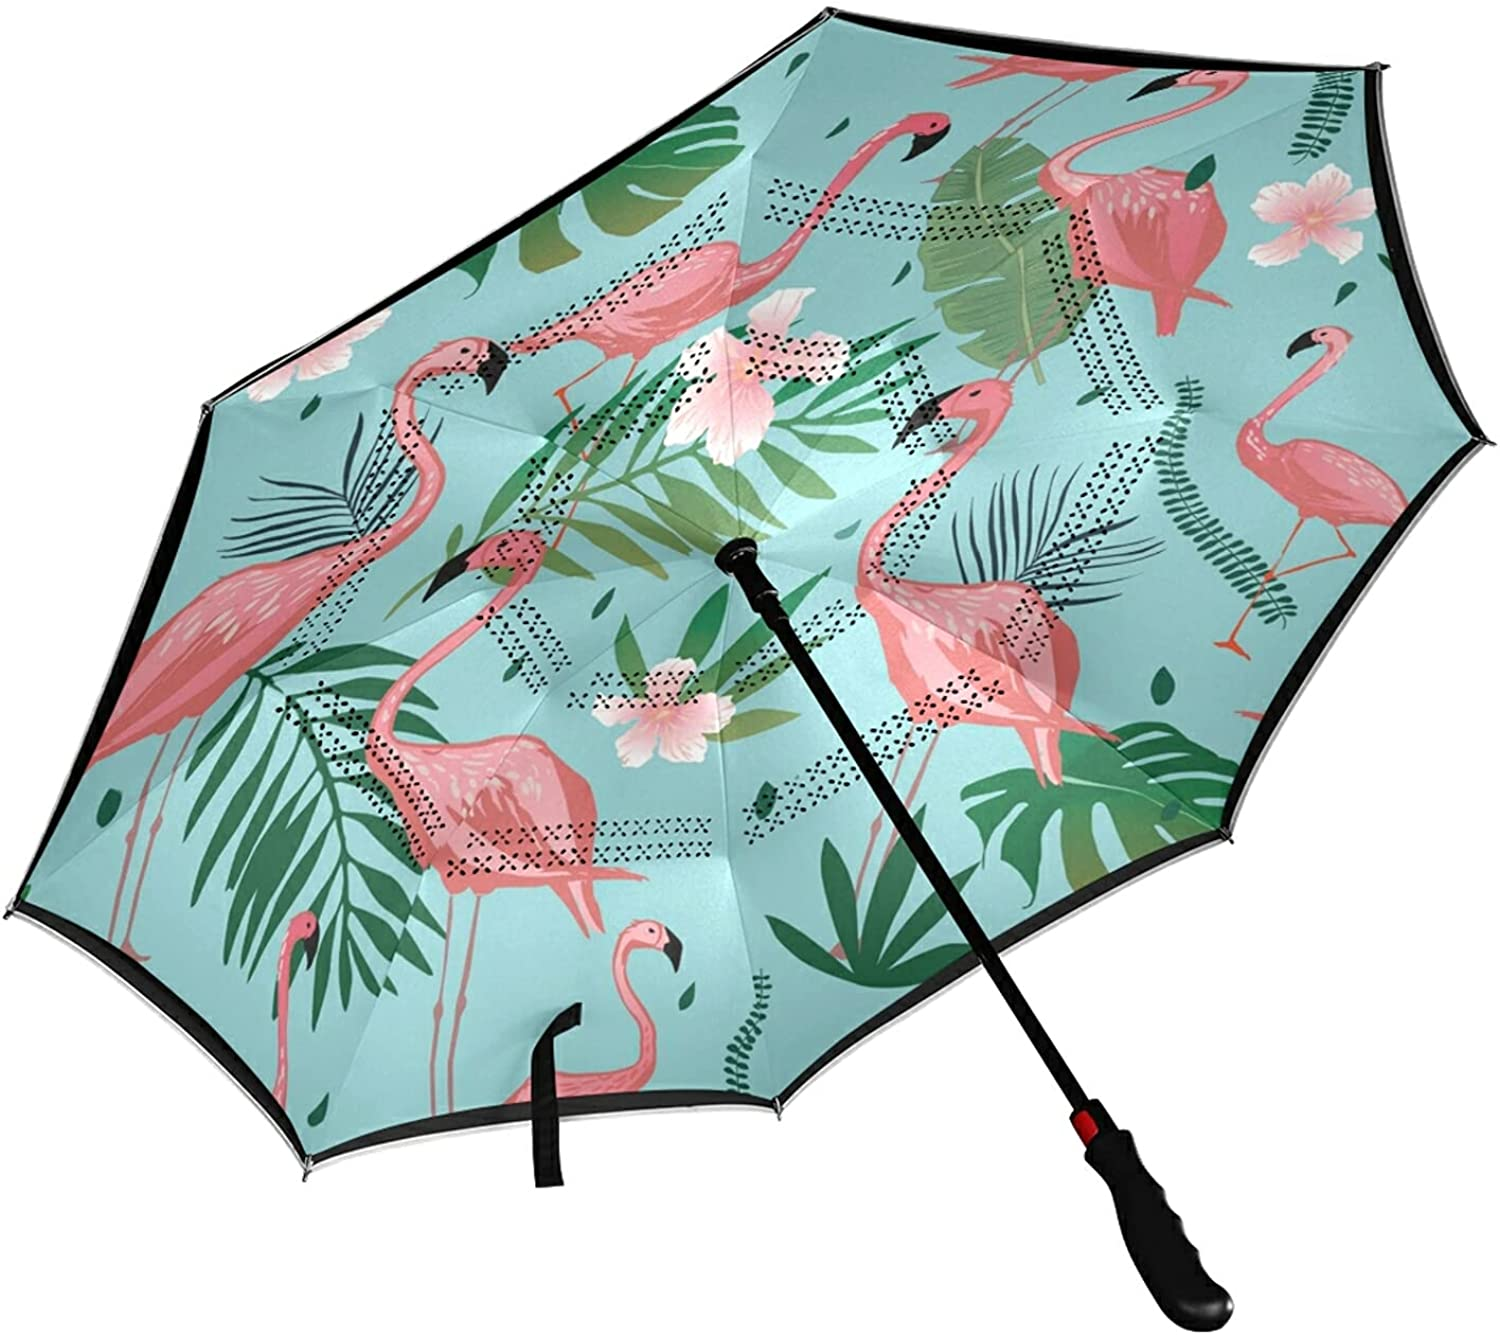 MNSRUU Reverse Popular popular Umbrella for Men Women - UV and Windproof 70% OFF Outlet Protect